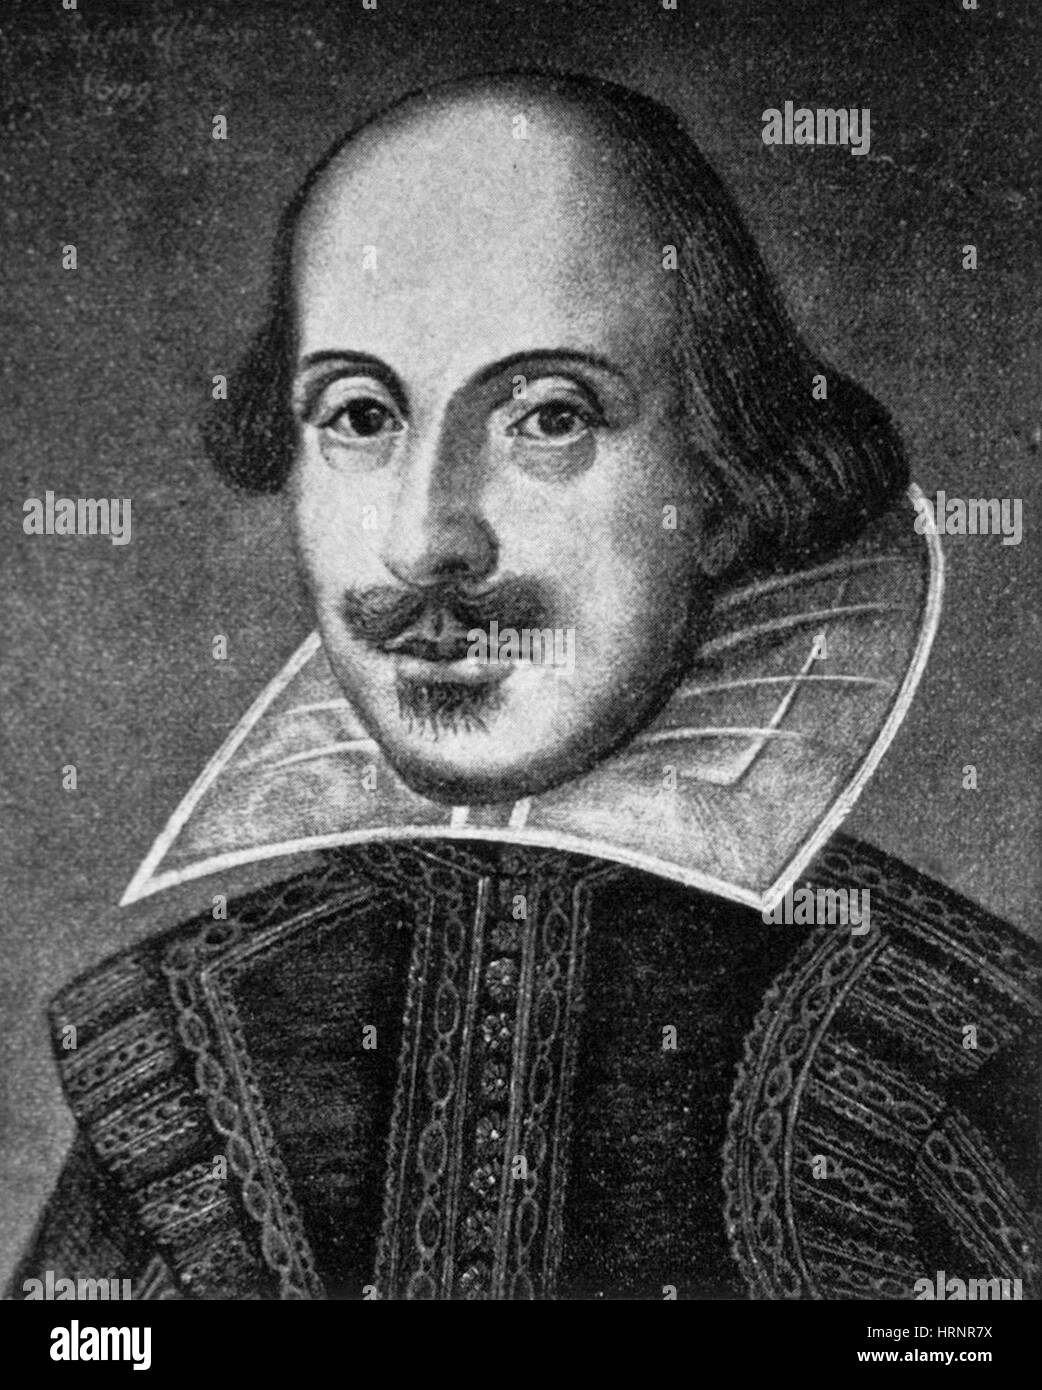 William Shakespeare, English Poet and Playwright - Stock Image